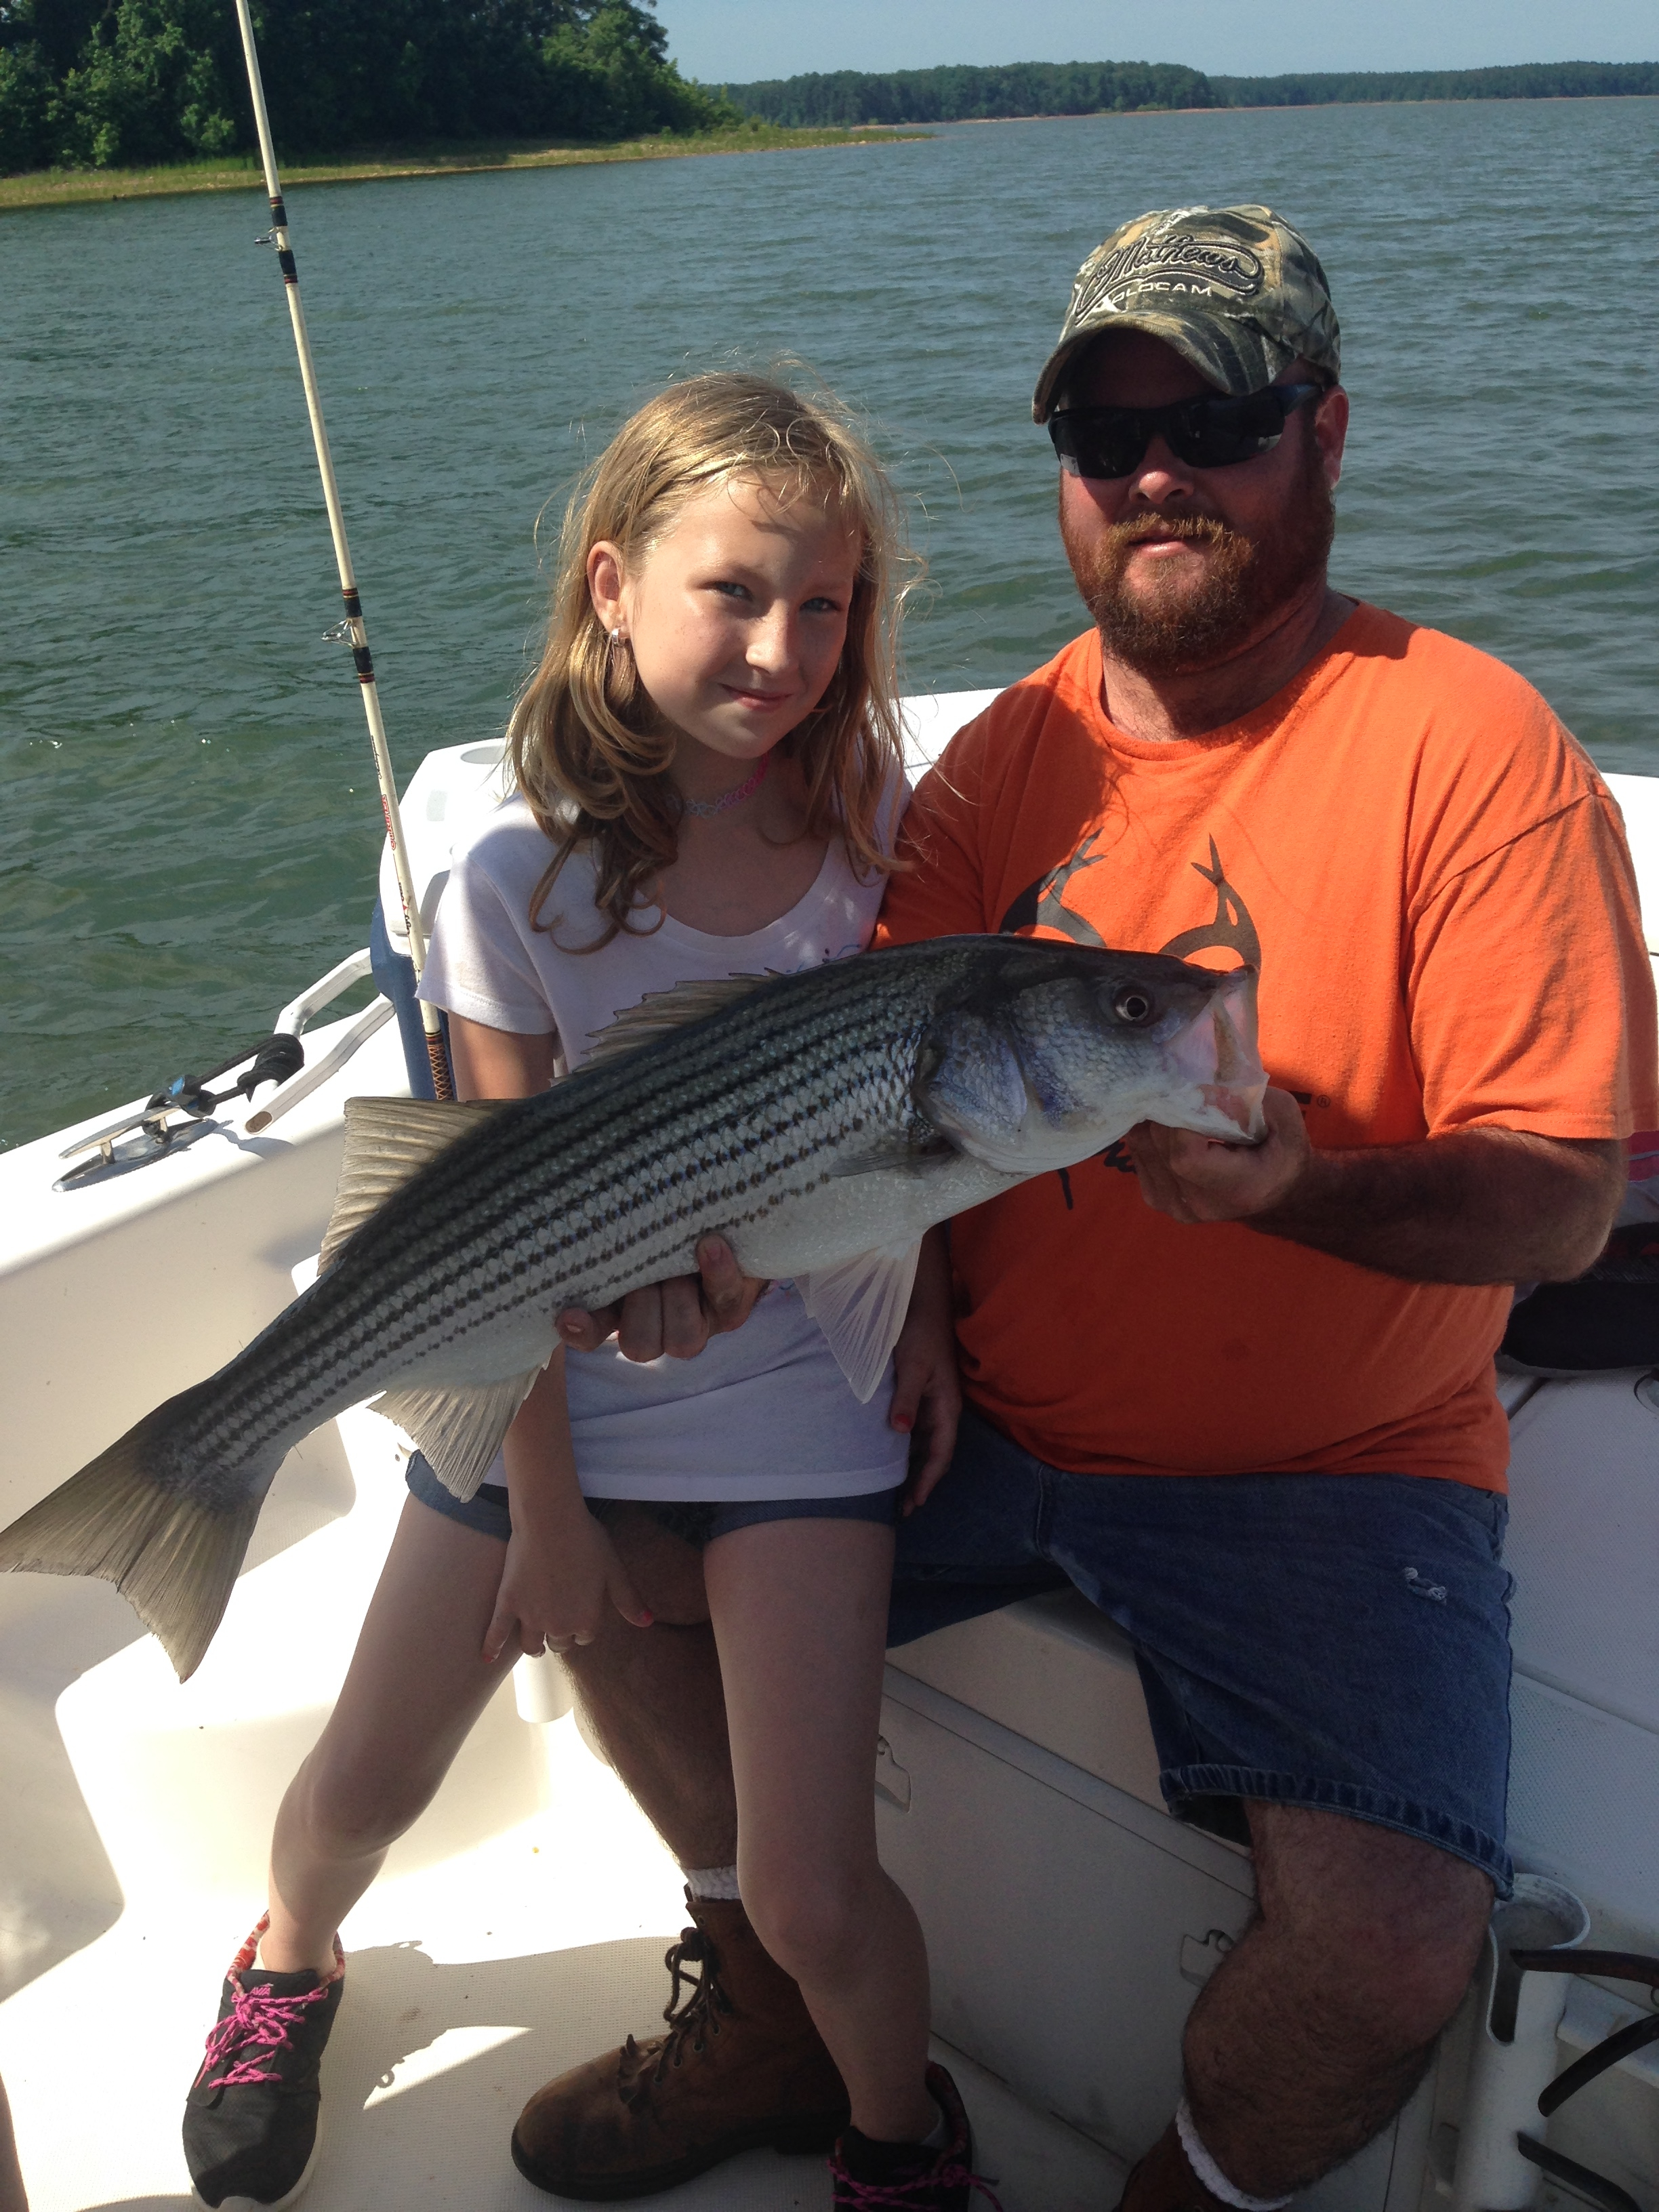 May 29,2017 Tiffant Barrow with her 15 pound striper Brad helping hold the striper.